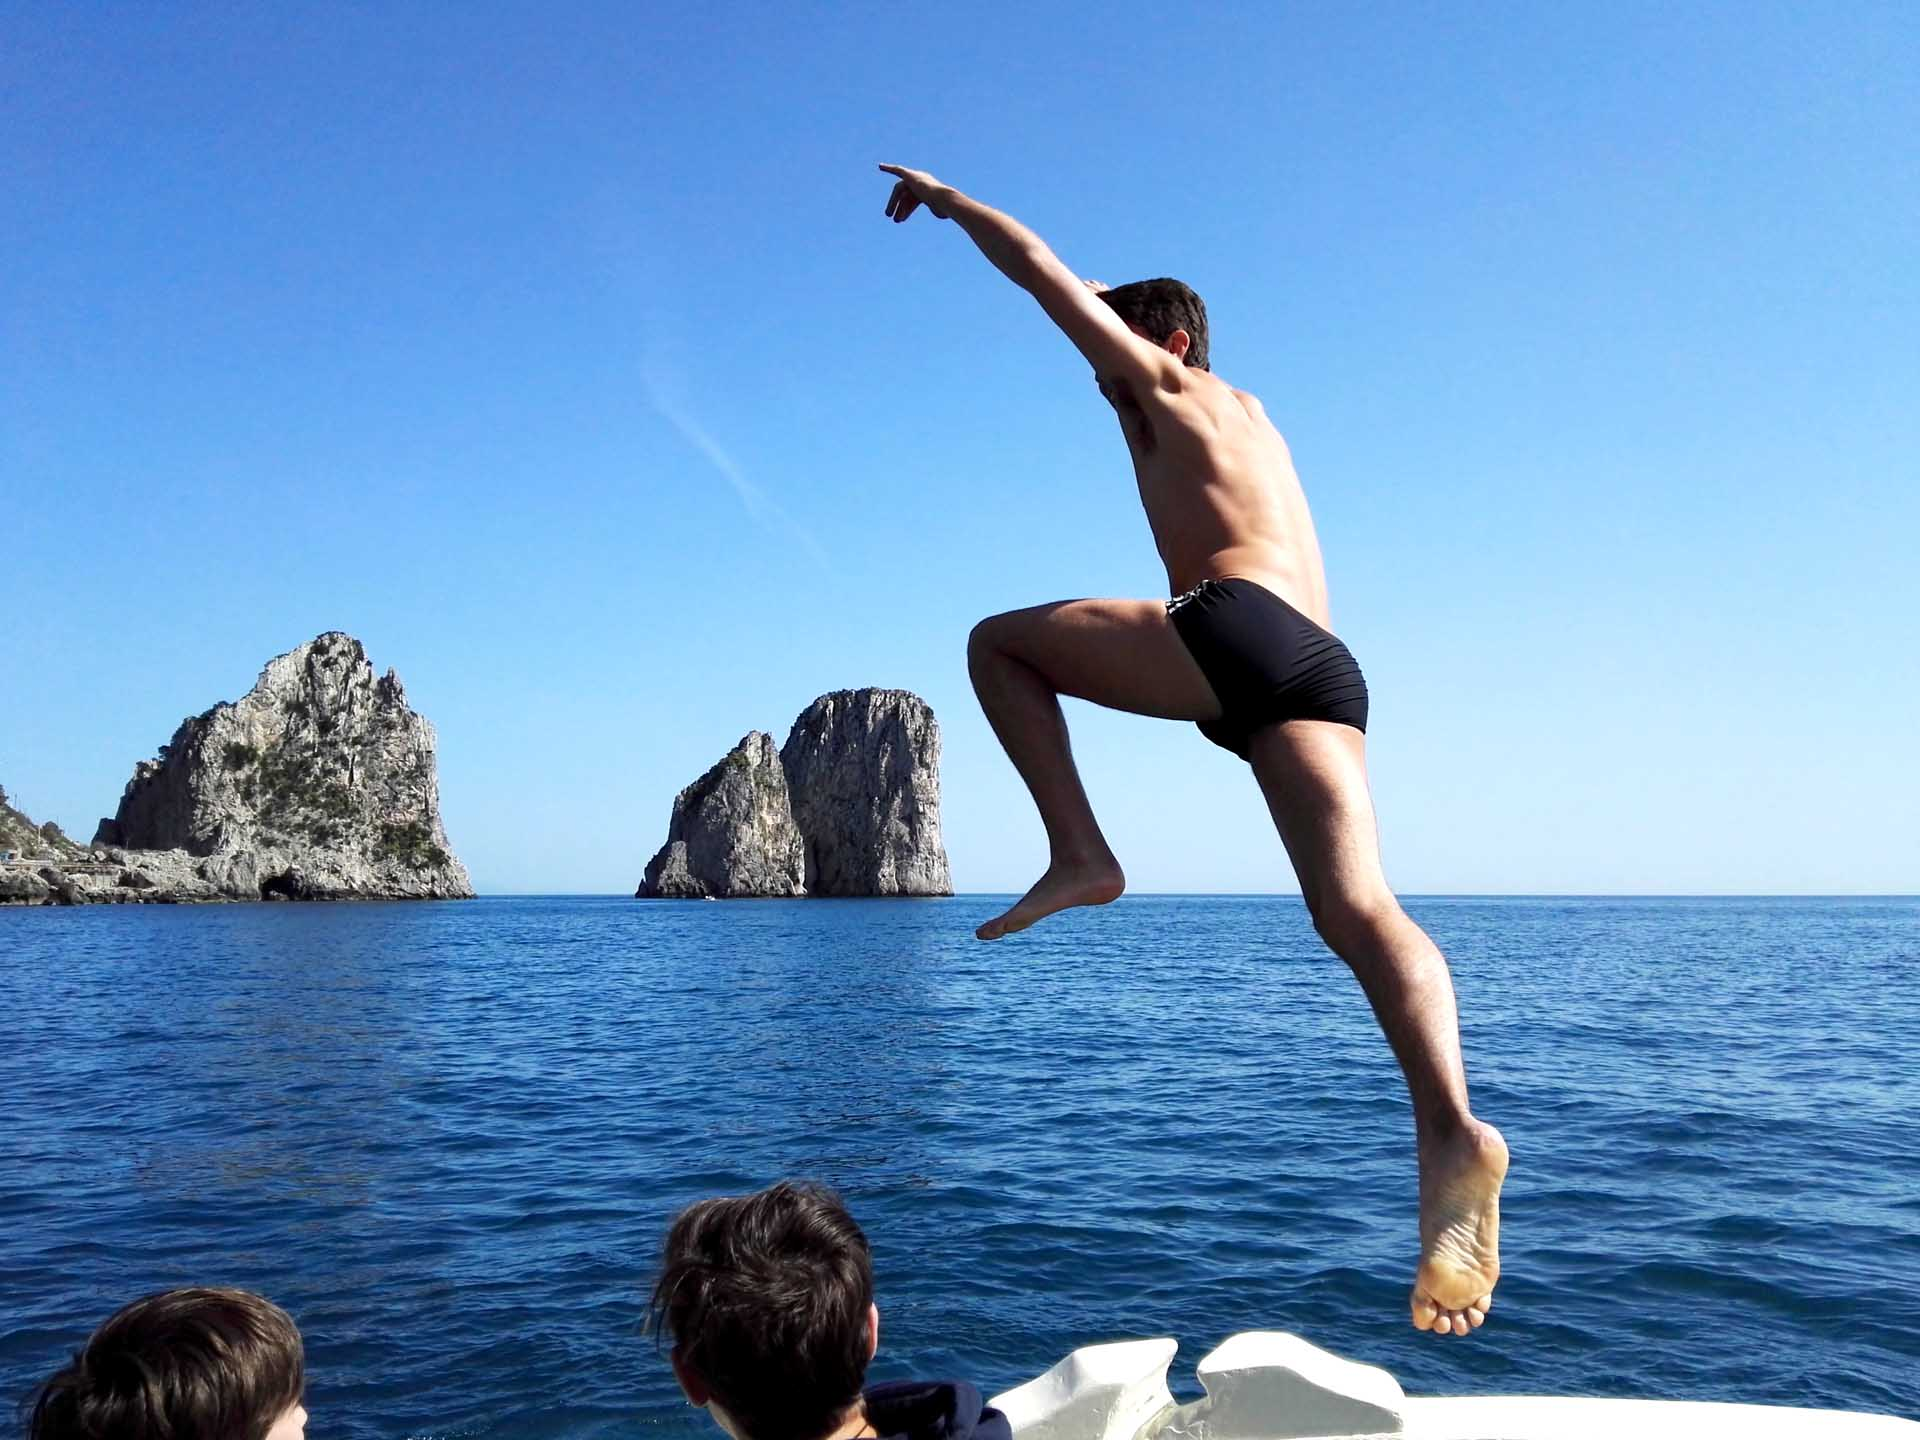 Dive into the blue sea of Capri from the boat